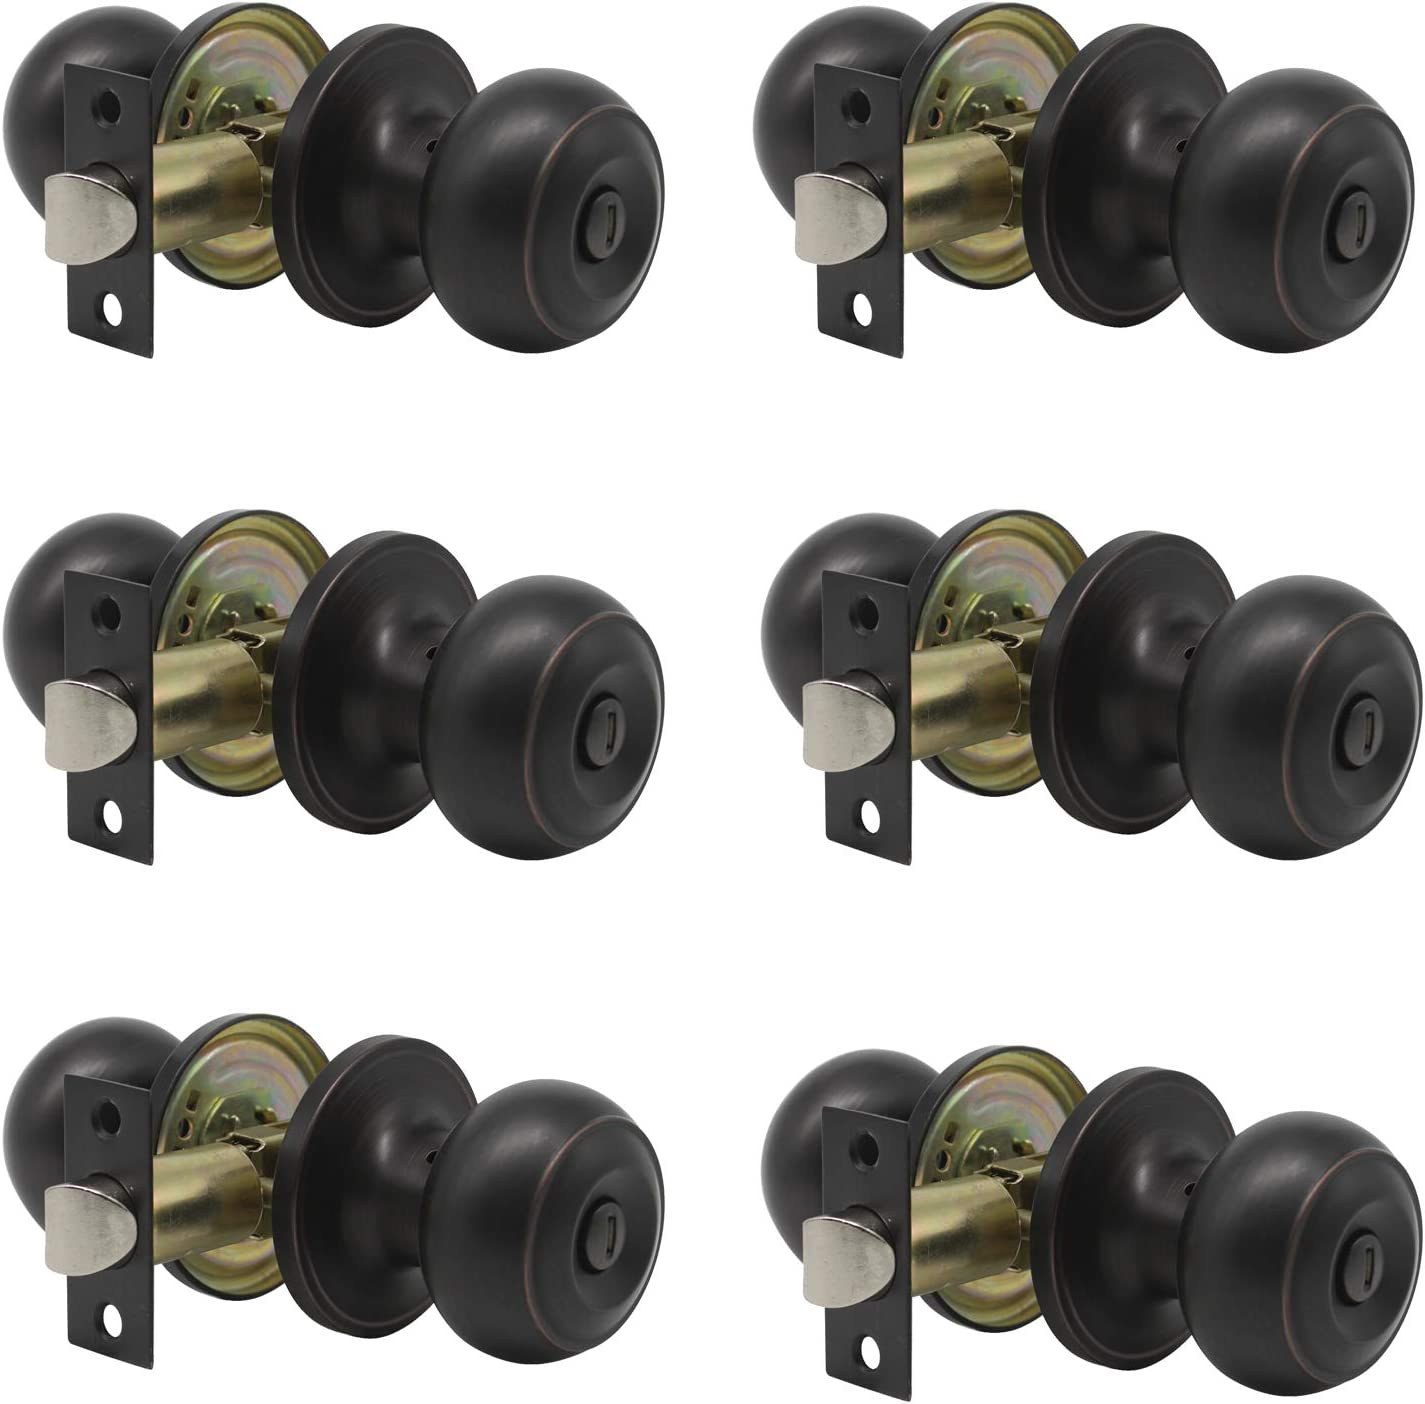 6 pack Probrico Interior Bathroom Privacy Keyless Doorknobs Door Lock Lockset 609-ORB-BK in Oil Rubbed Bronze